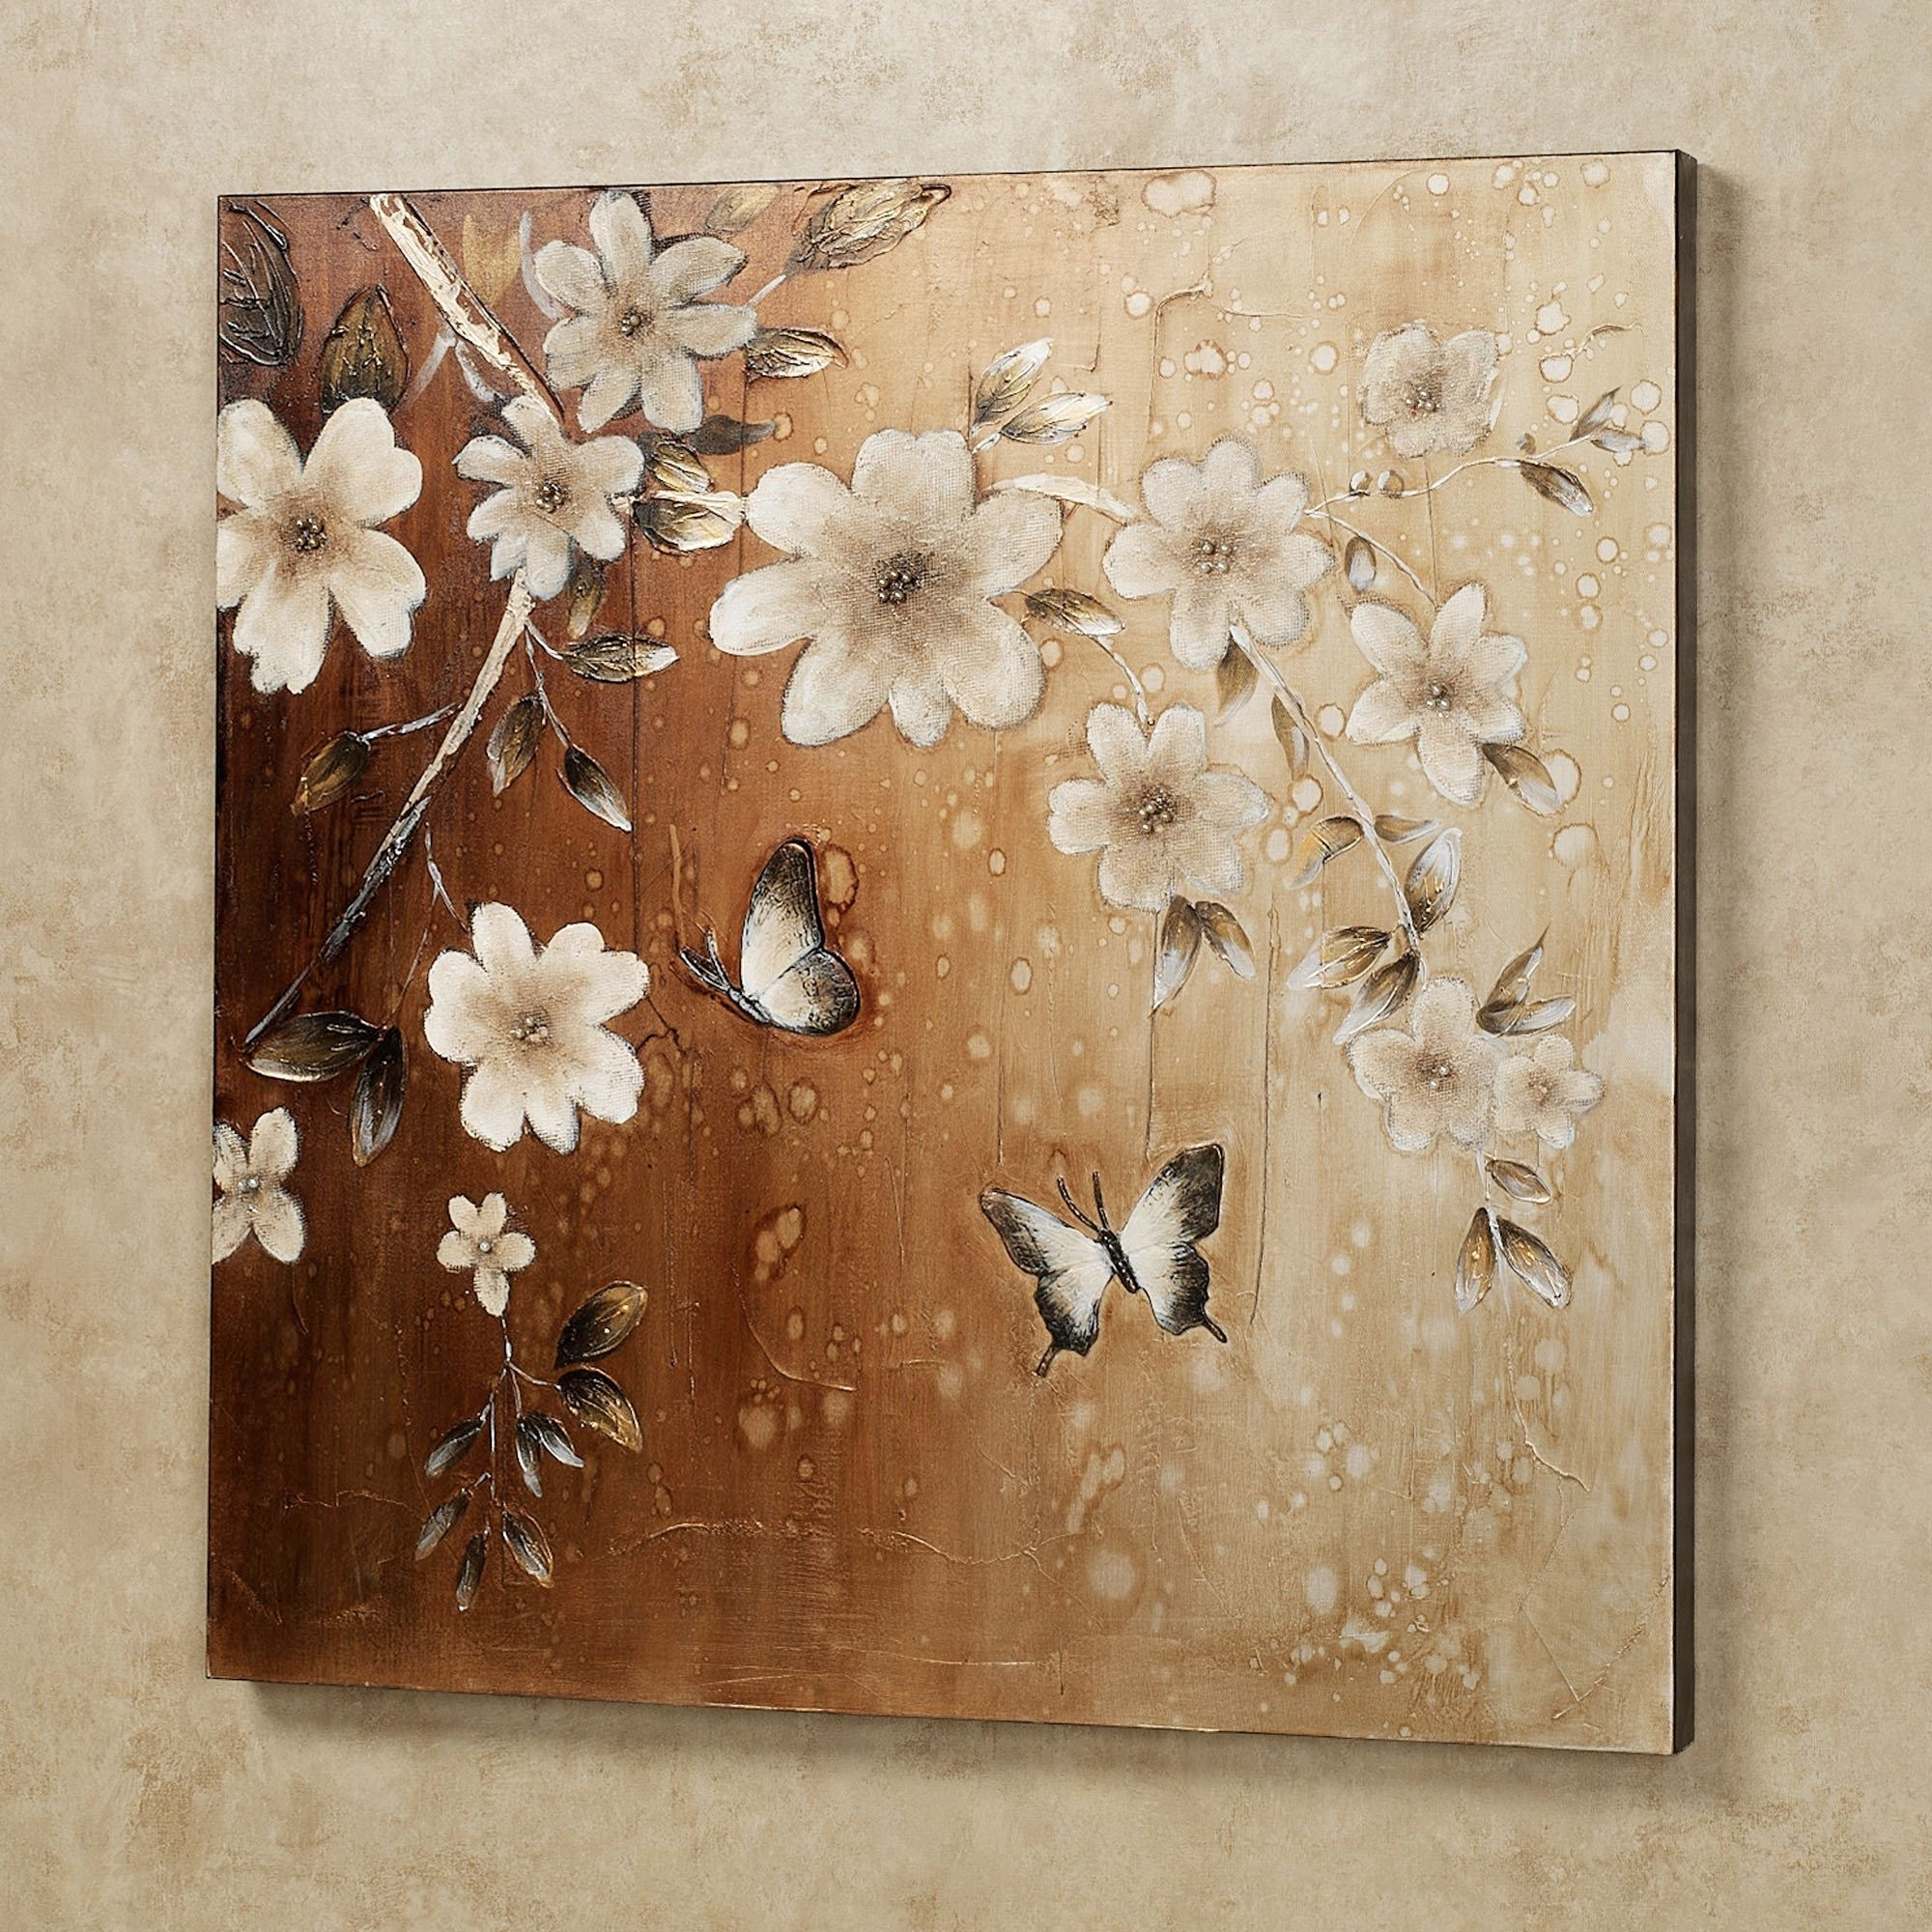 Wall Art Designs: Floral Canvas Wall Art Midday Sun Canvas Wall Intended For Most Recently Released Canvas Wall Art Of Flowers (View 7 of 15)